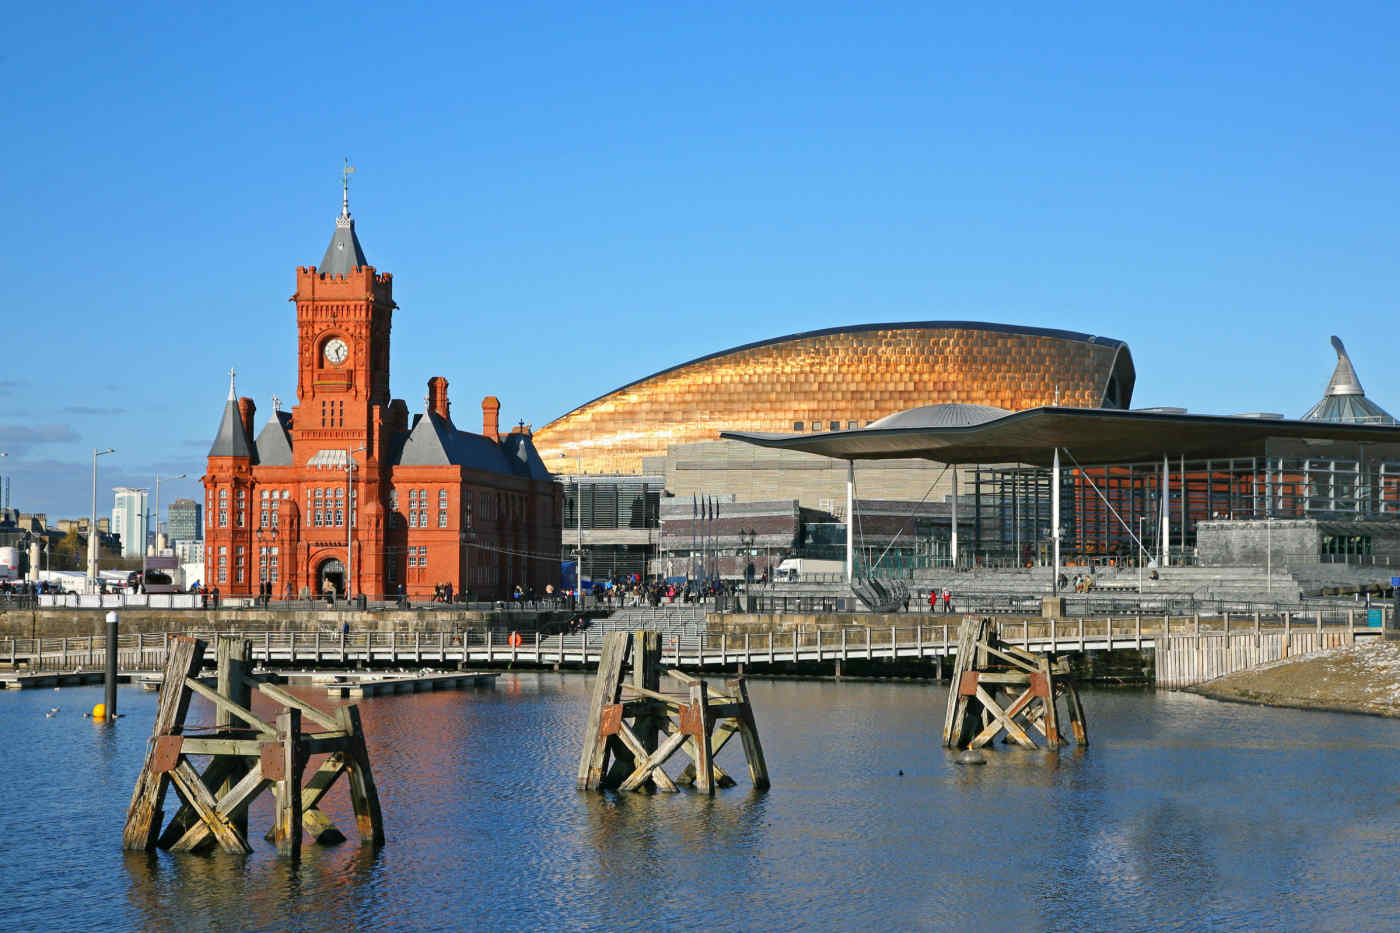 Pierhead in Cardiff, Wales